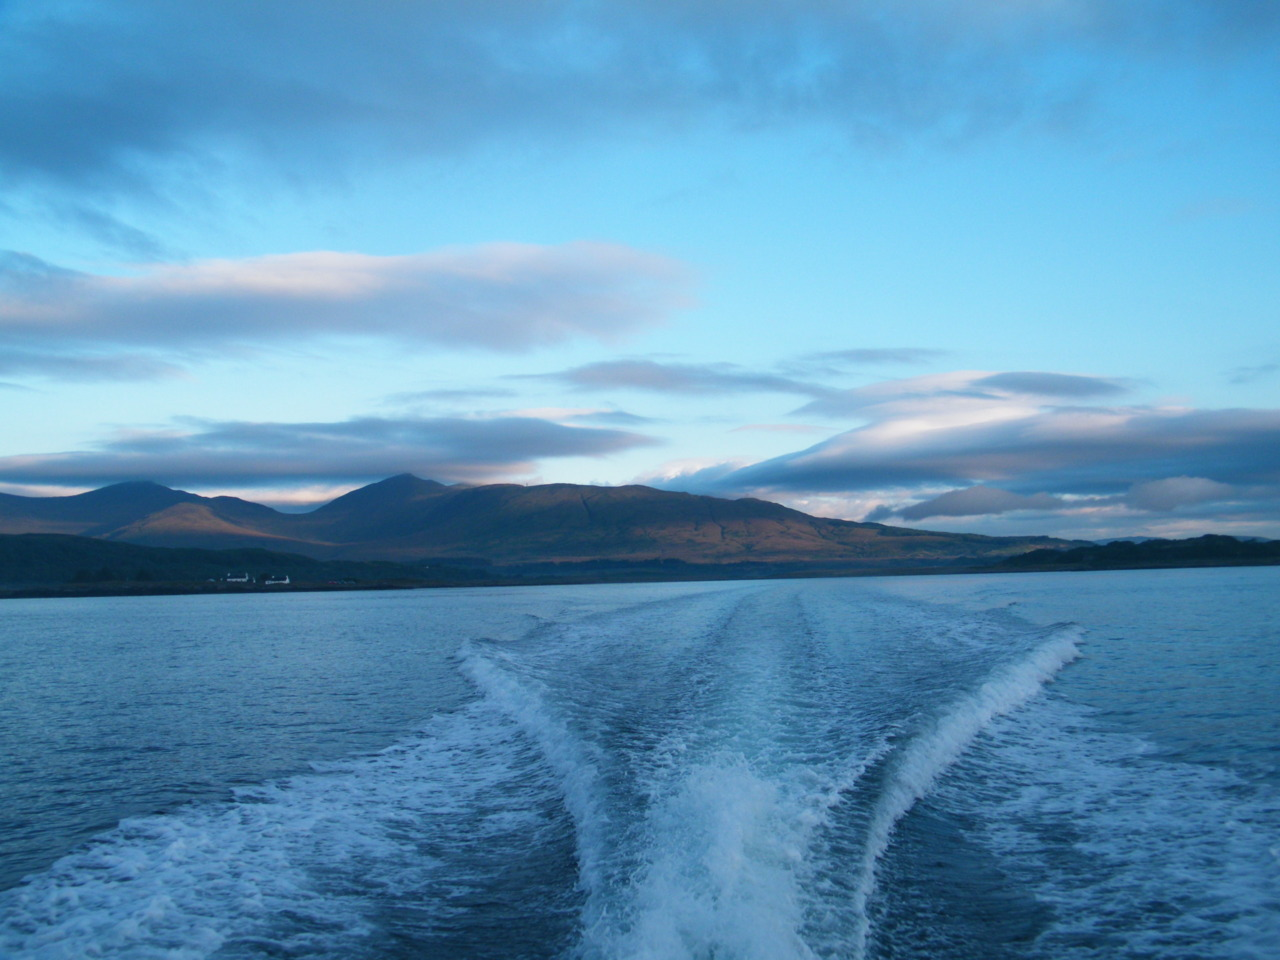 Heading back to Loch Feochan